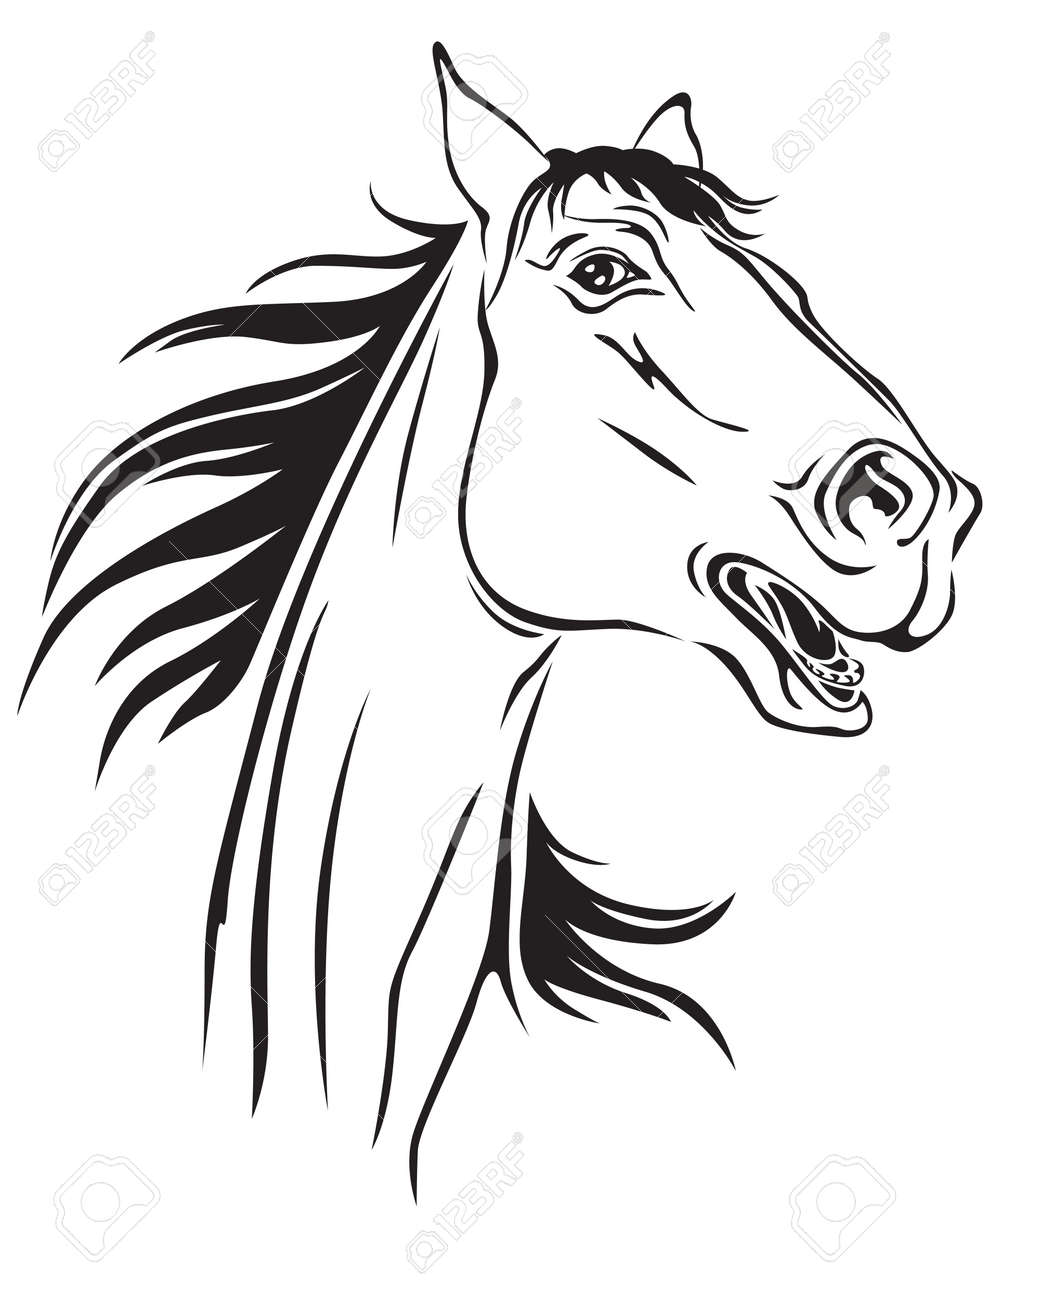 Contour image of a beautiful neighing horse Stock Vector - 23551864